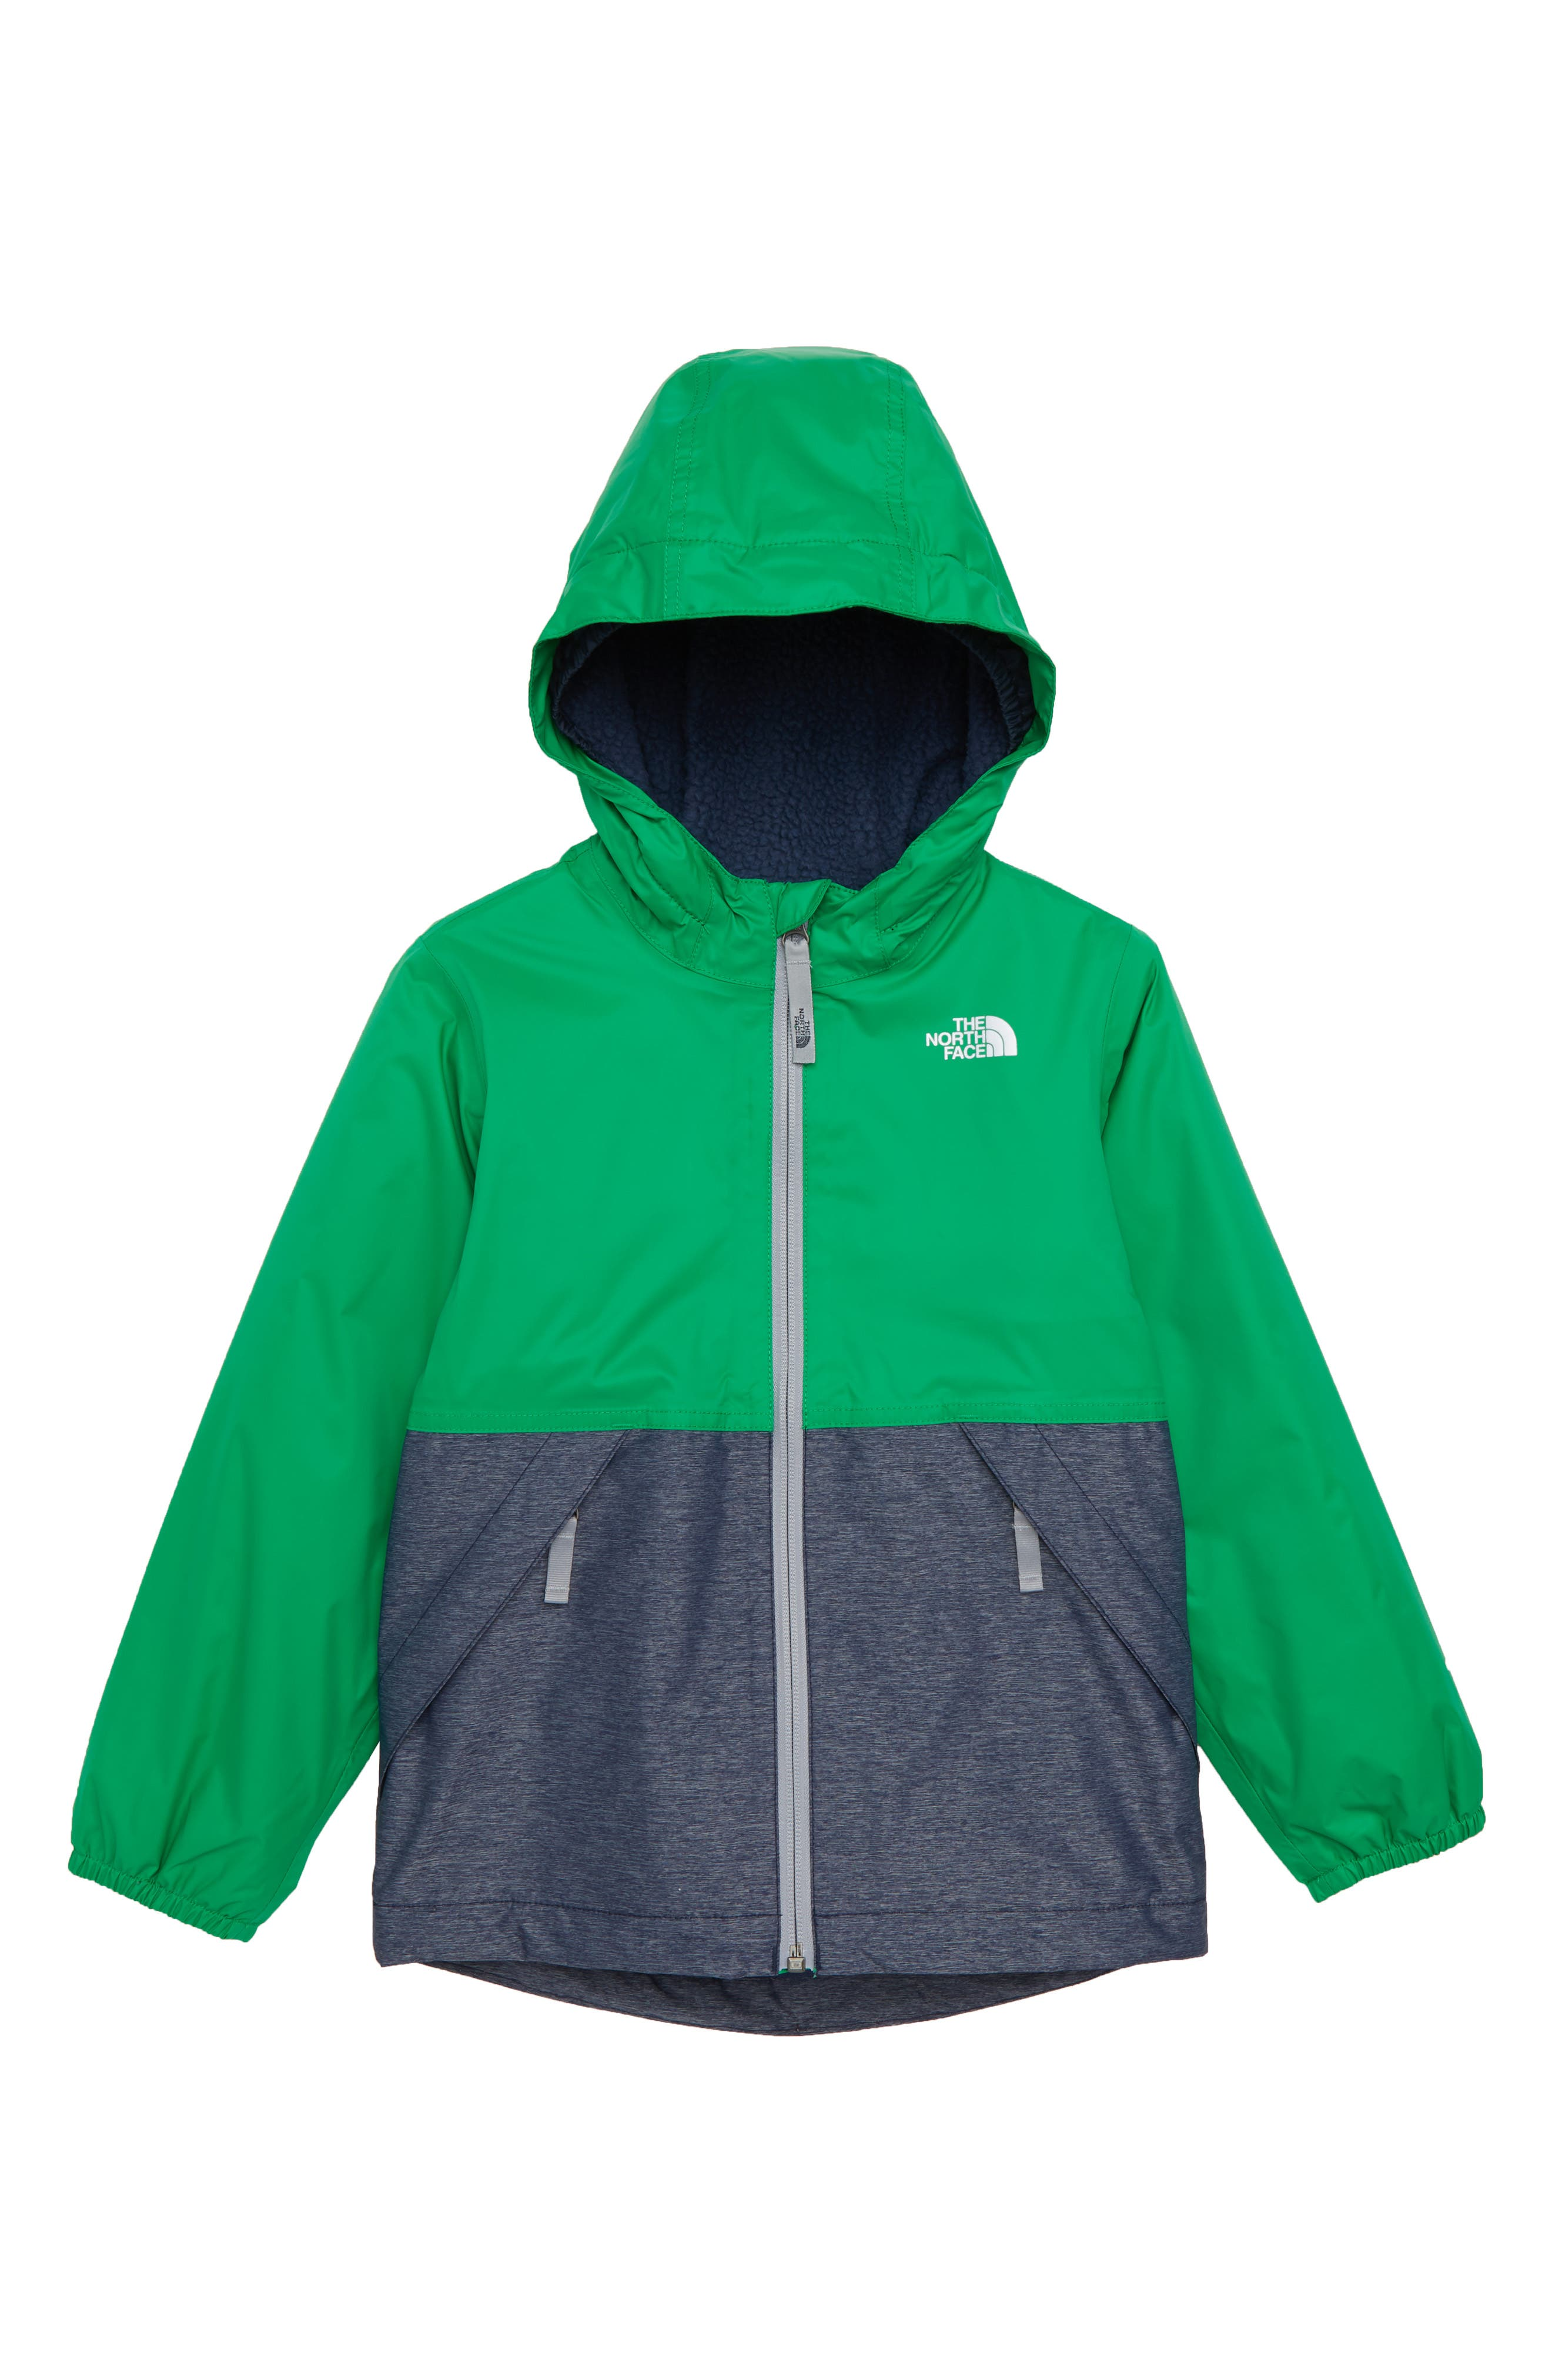 Warm Storm Hooded Waterproof Jacket,                             Main thumbnail 1, color,                             PRIMARY GREEN